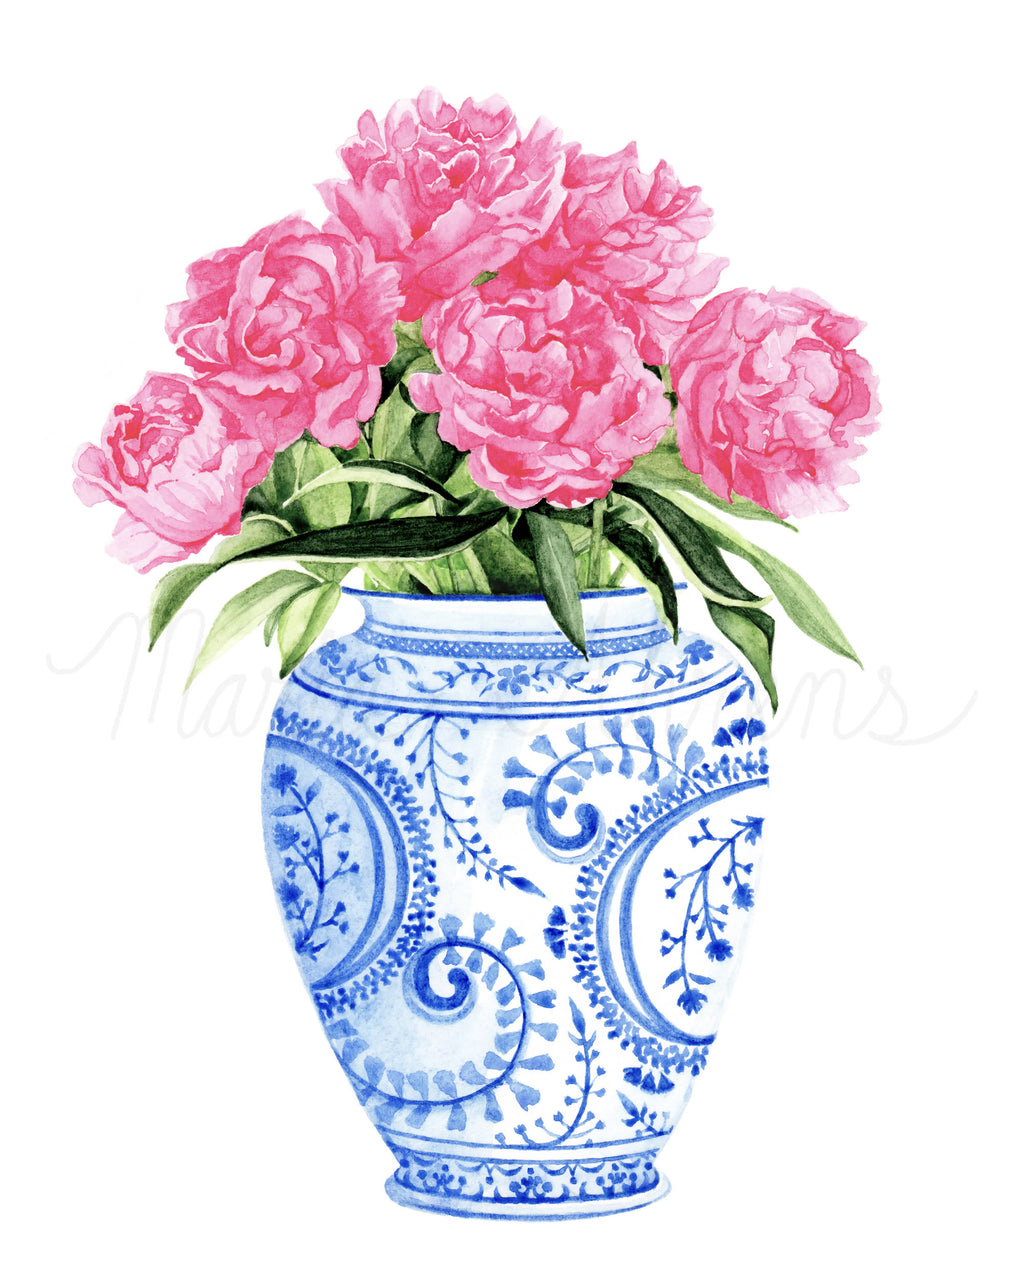 Ginger Jar Peonies Printable Watercolor Fashion Illustration